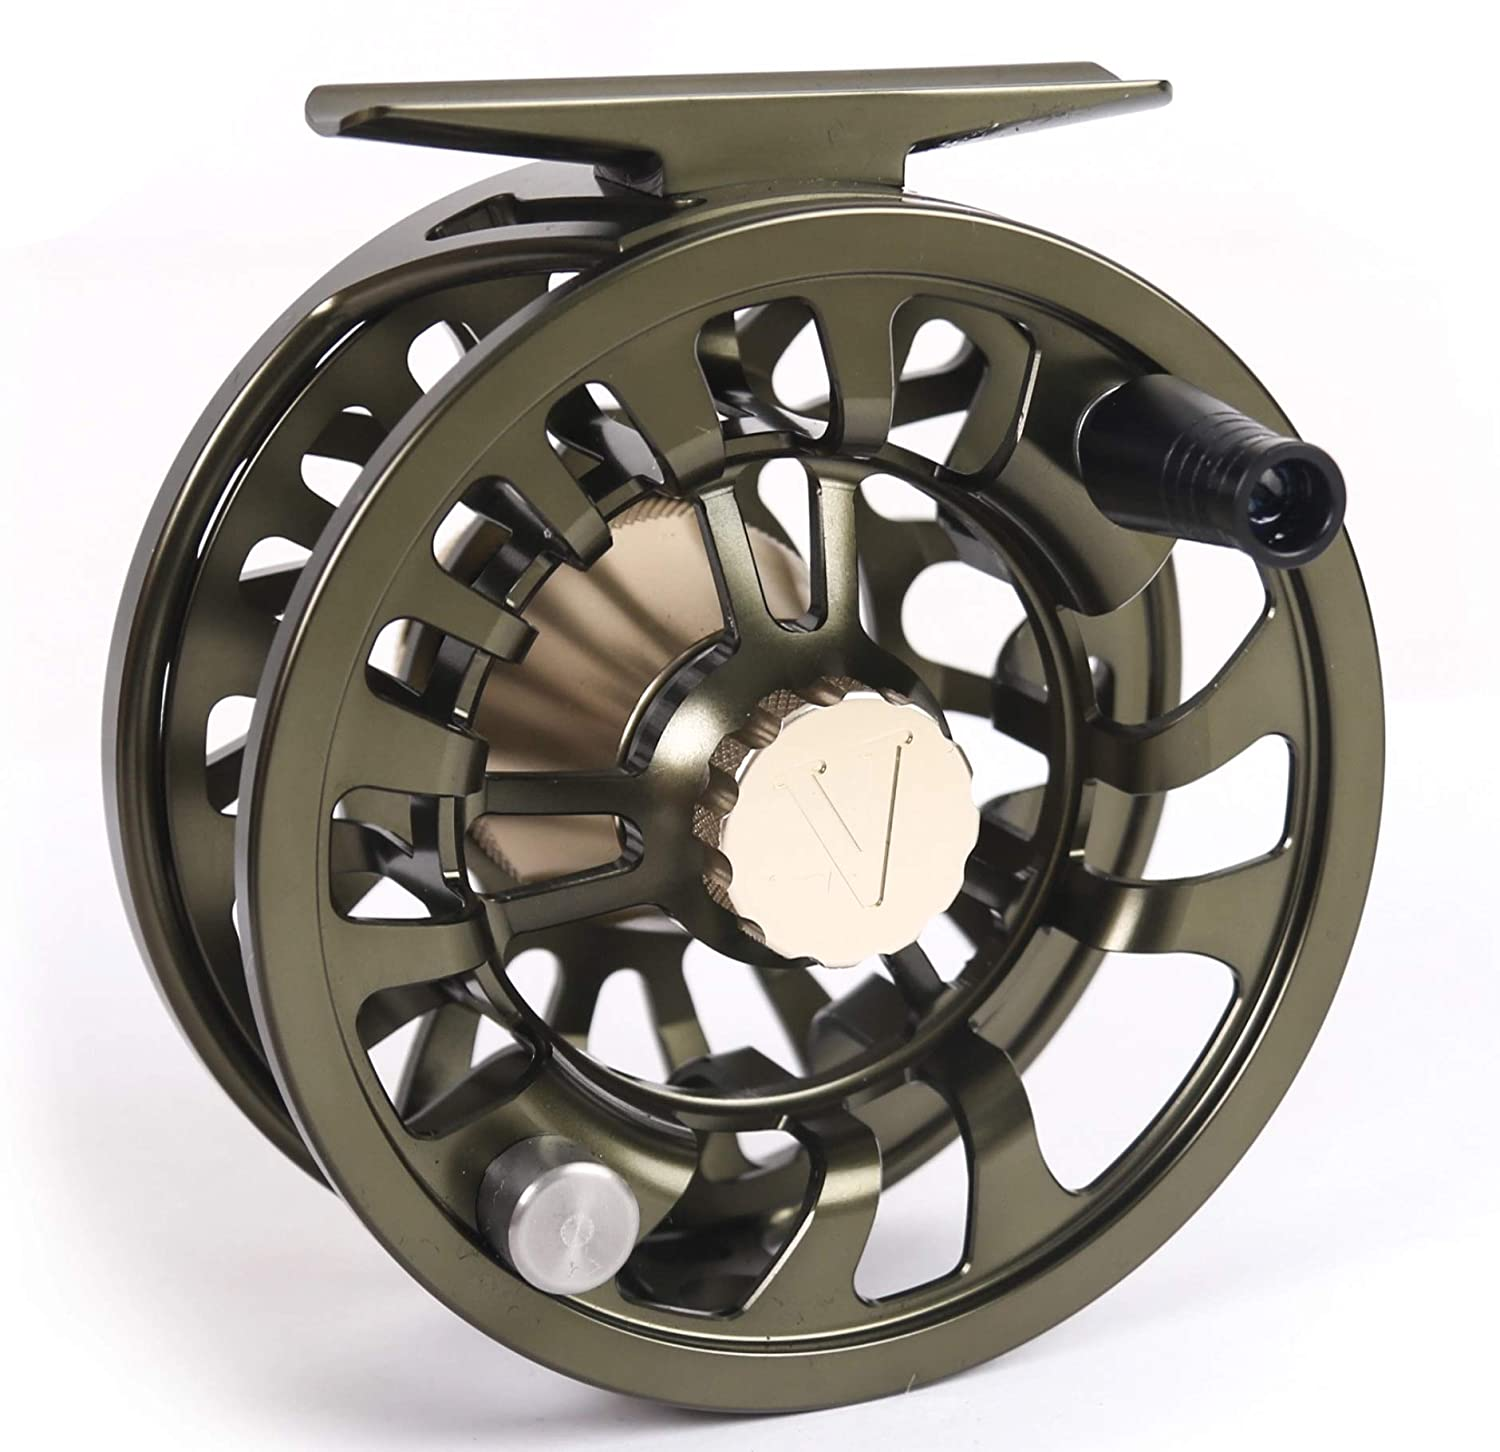 New 2019 Colorado Fly Fishing Reel 5 6 7 Weight Trout Bass Fishing Super Large Arbor, Multi-disc Drag Wheel Ergonomic Handle Left Right Handed, Sealed for Fresh or Salt Water